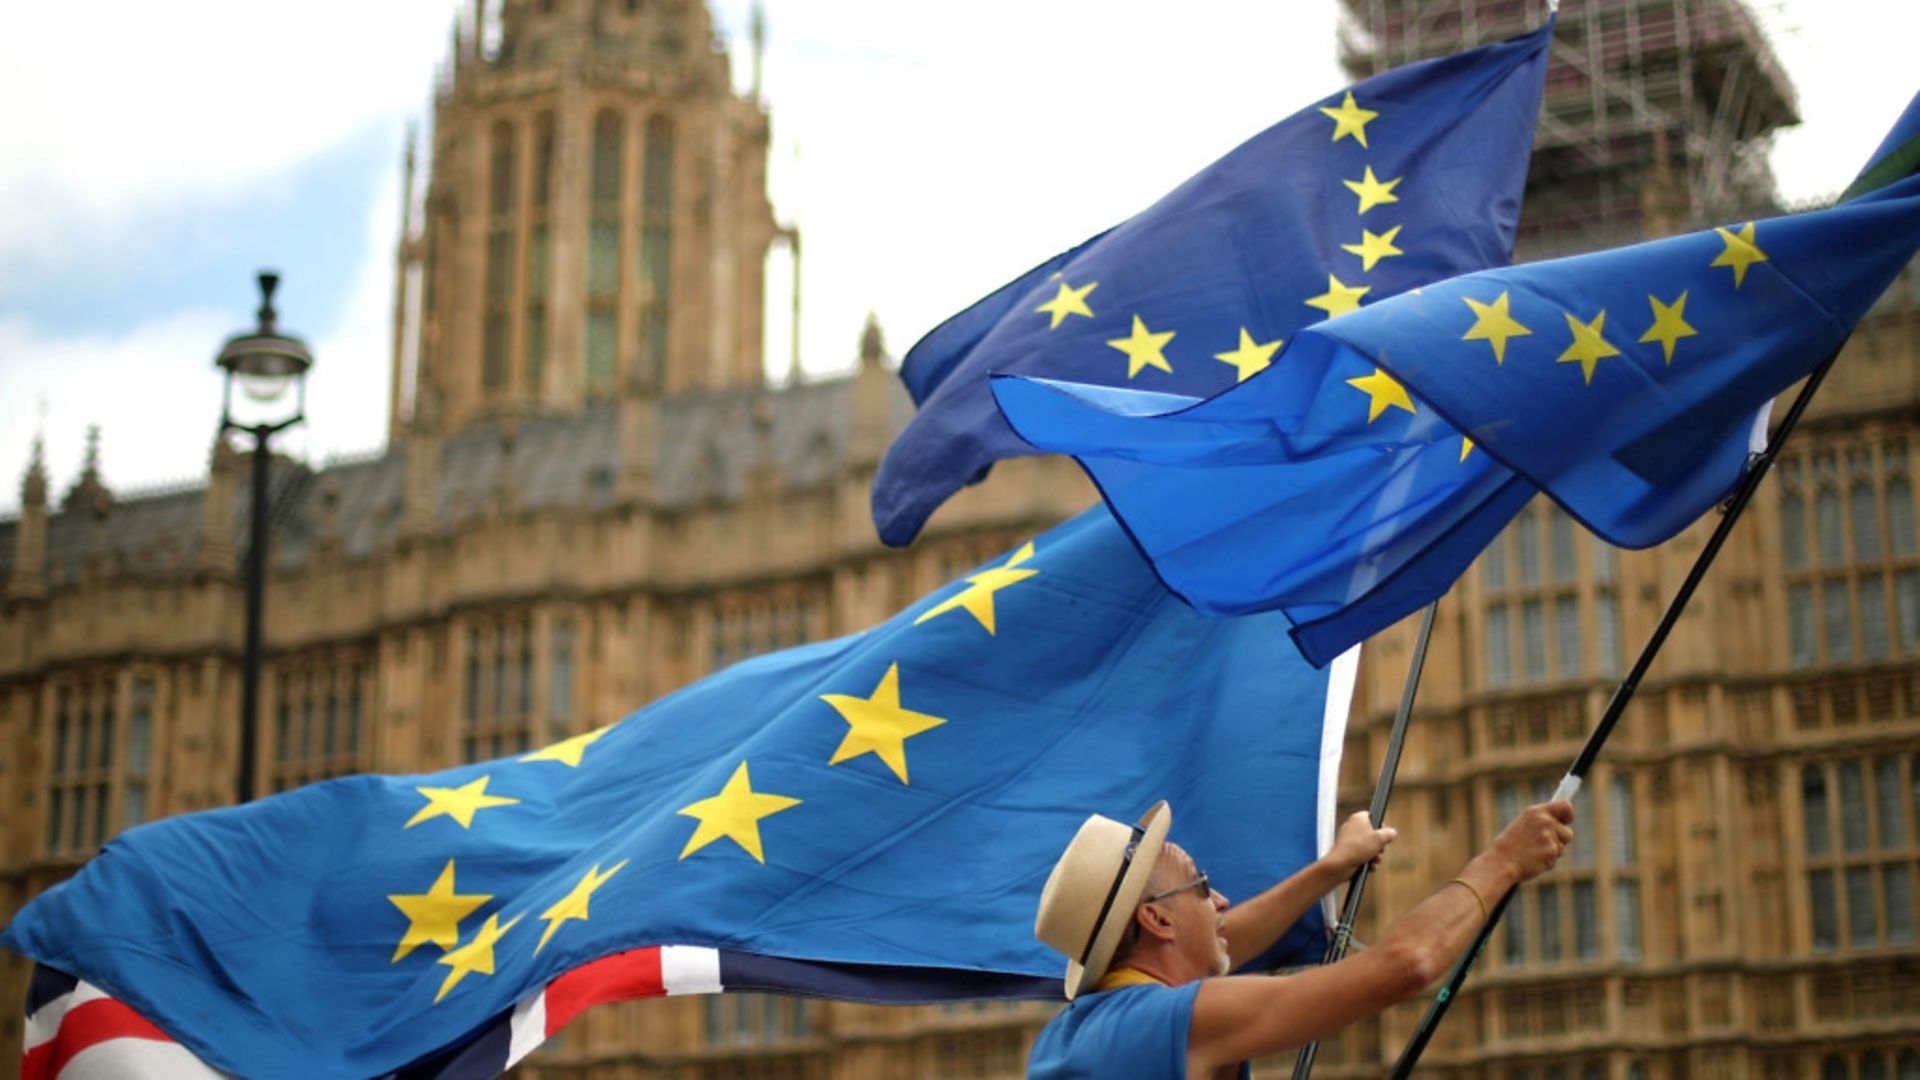 Anti-Brexit demonstrators wave European and Union flags outside the Houses of Parliament in London - Credit: PA Wire/PA Images